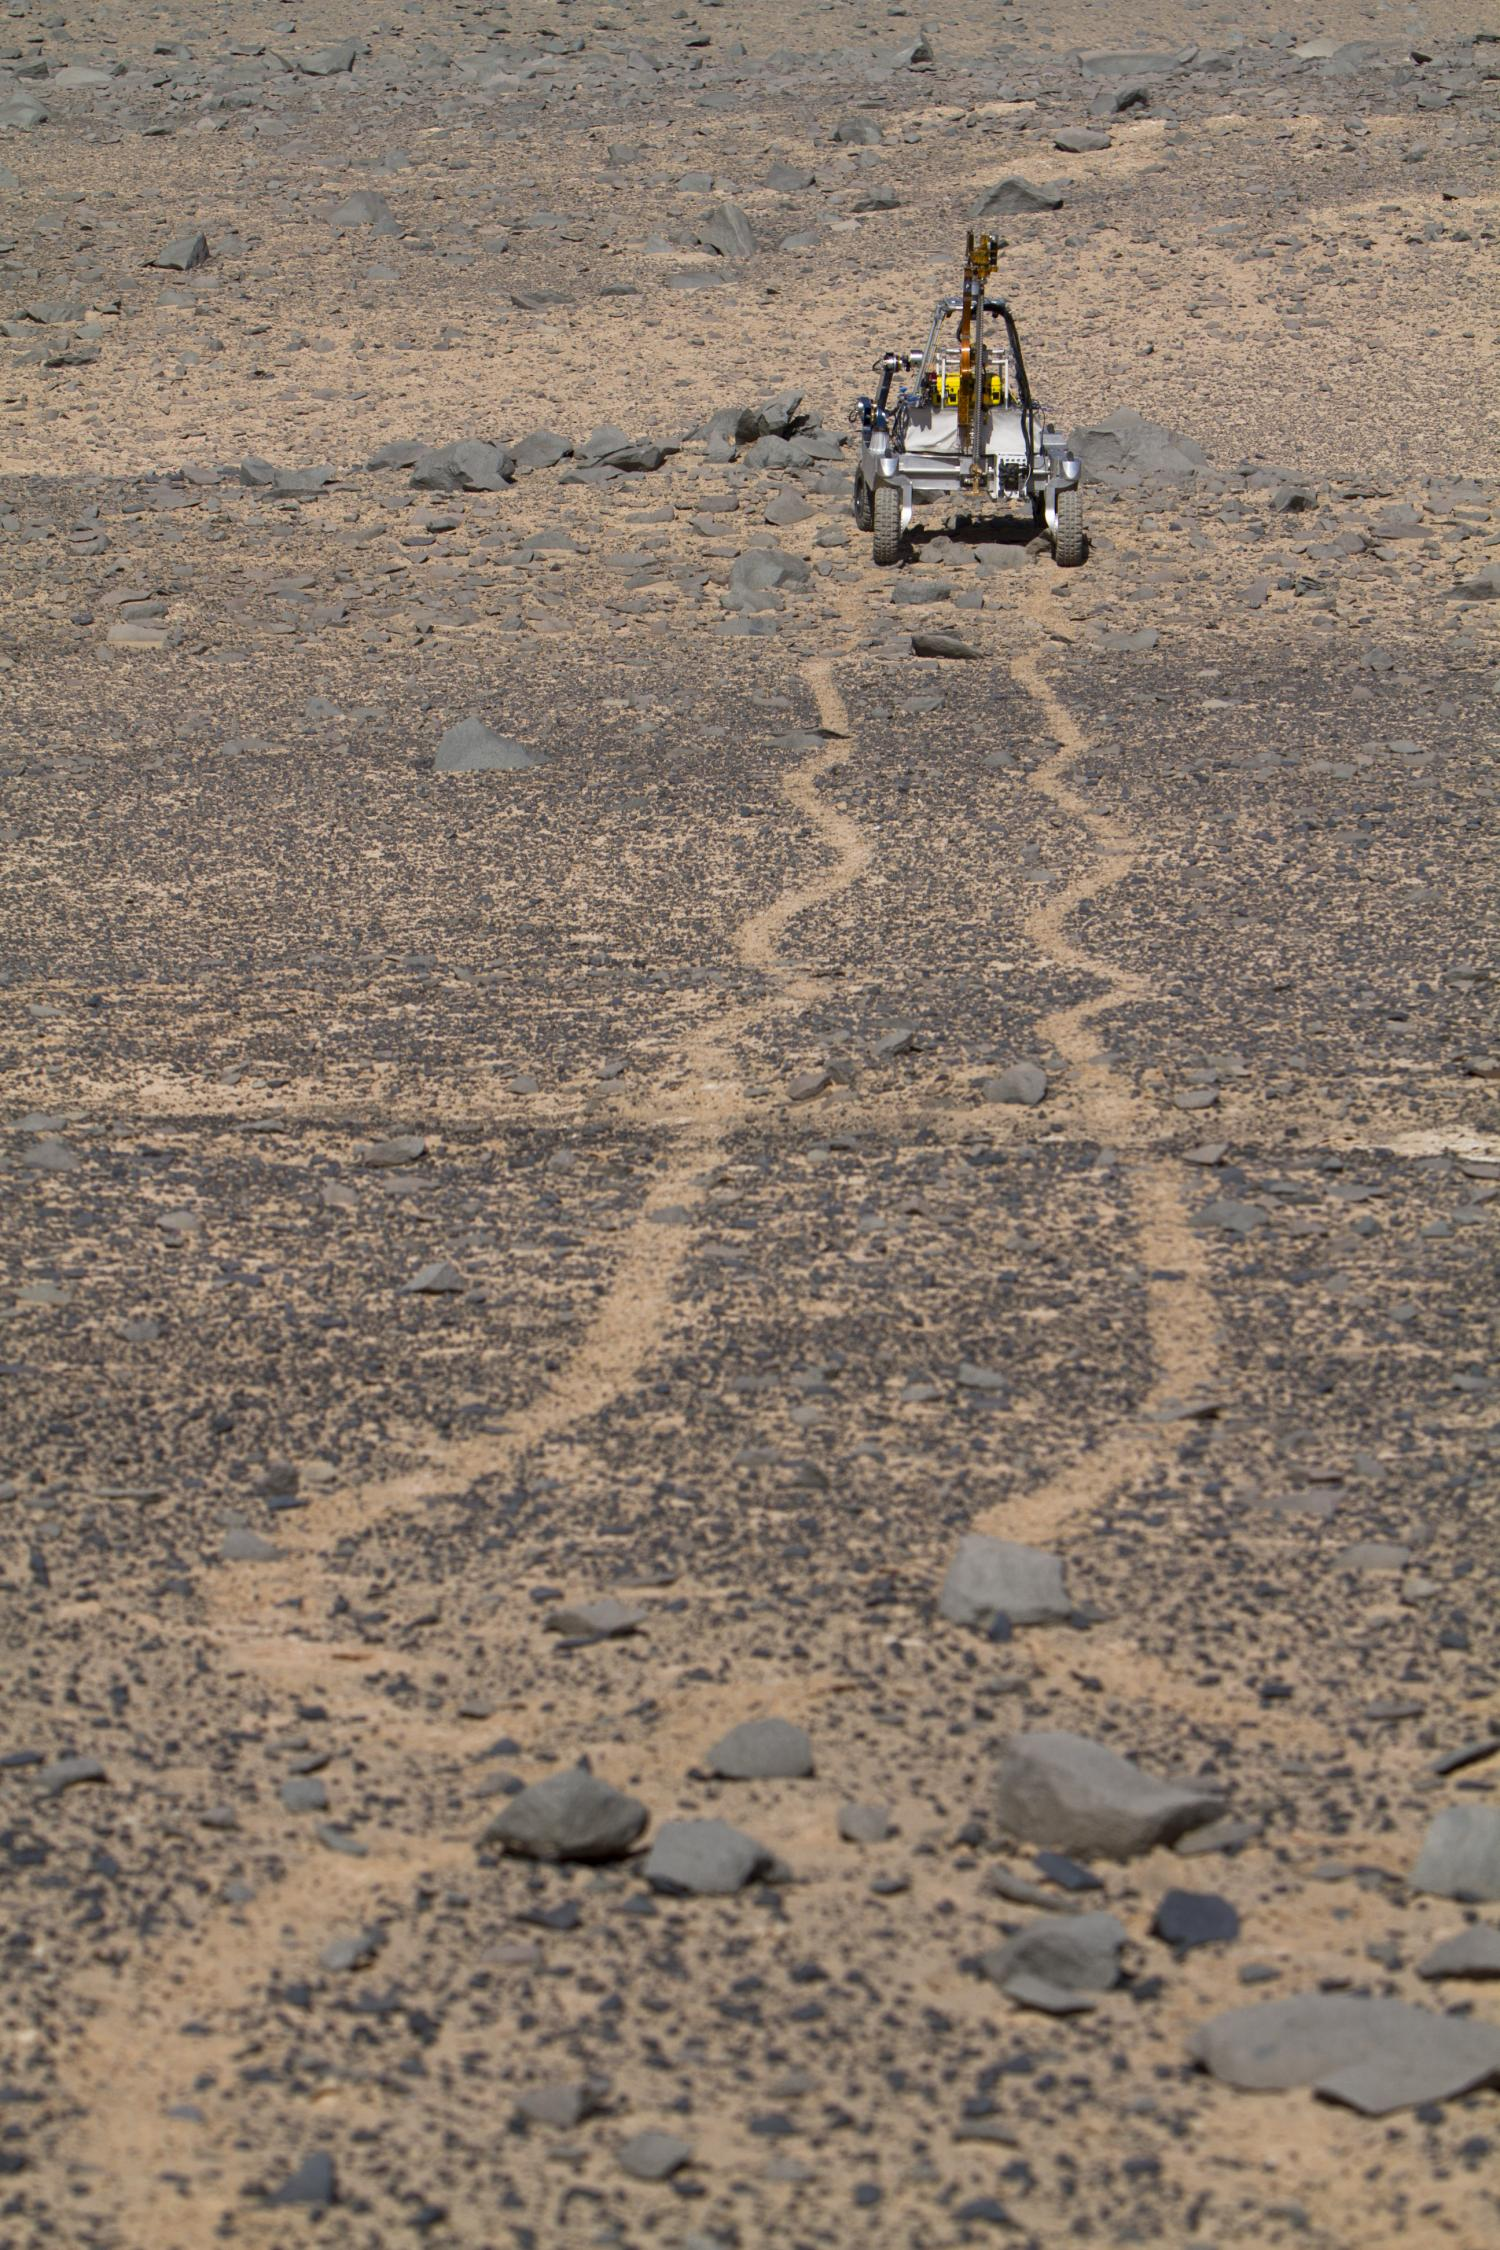 Mars rover tests driving, drilling and detecting life in ...